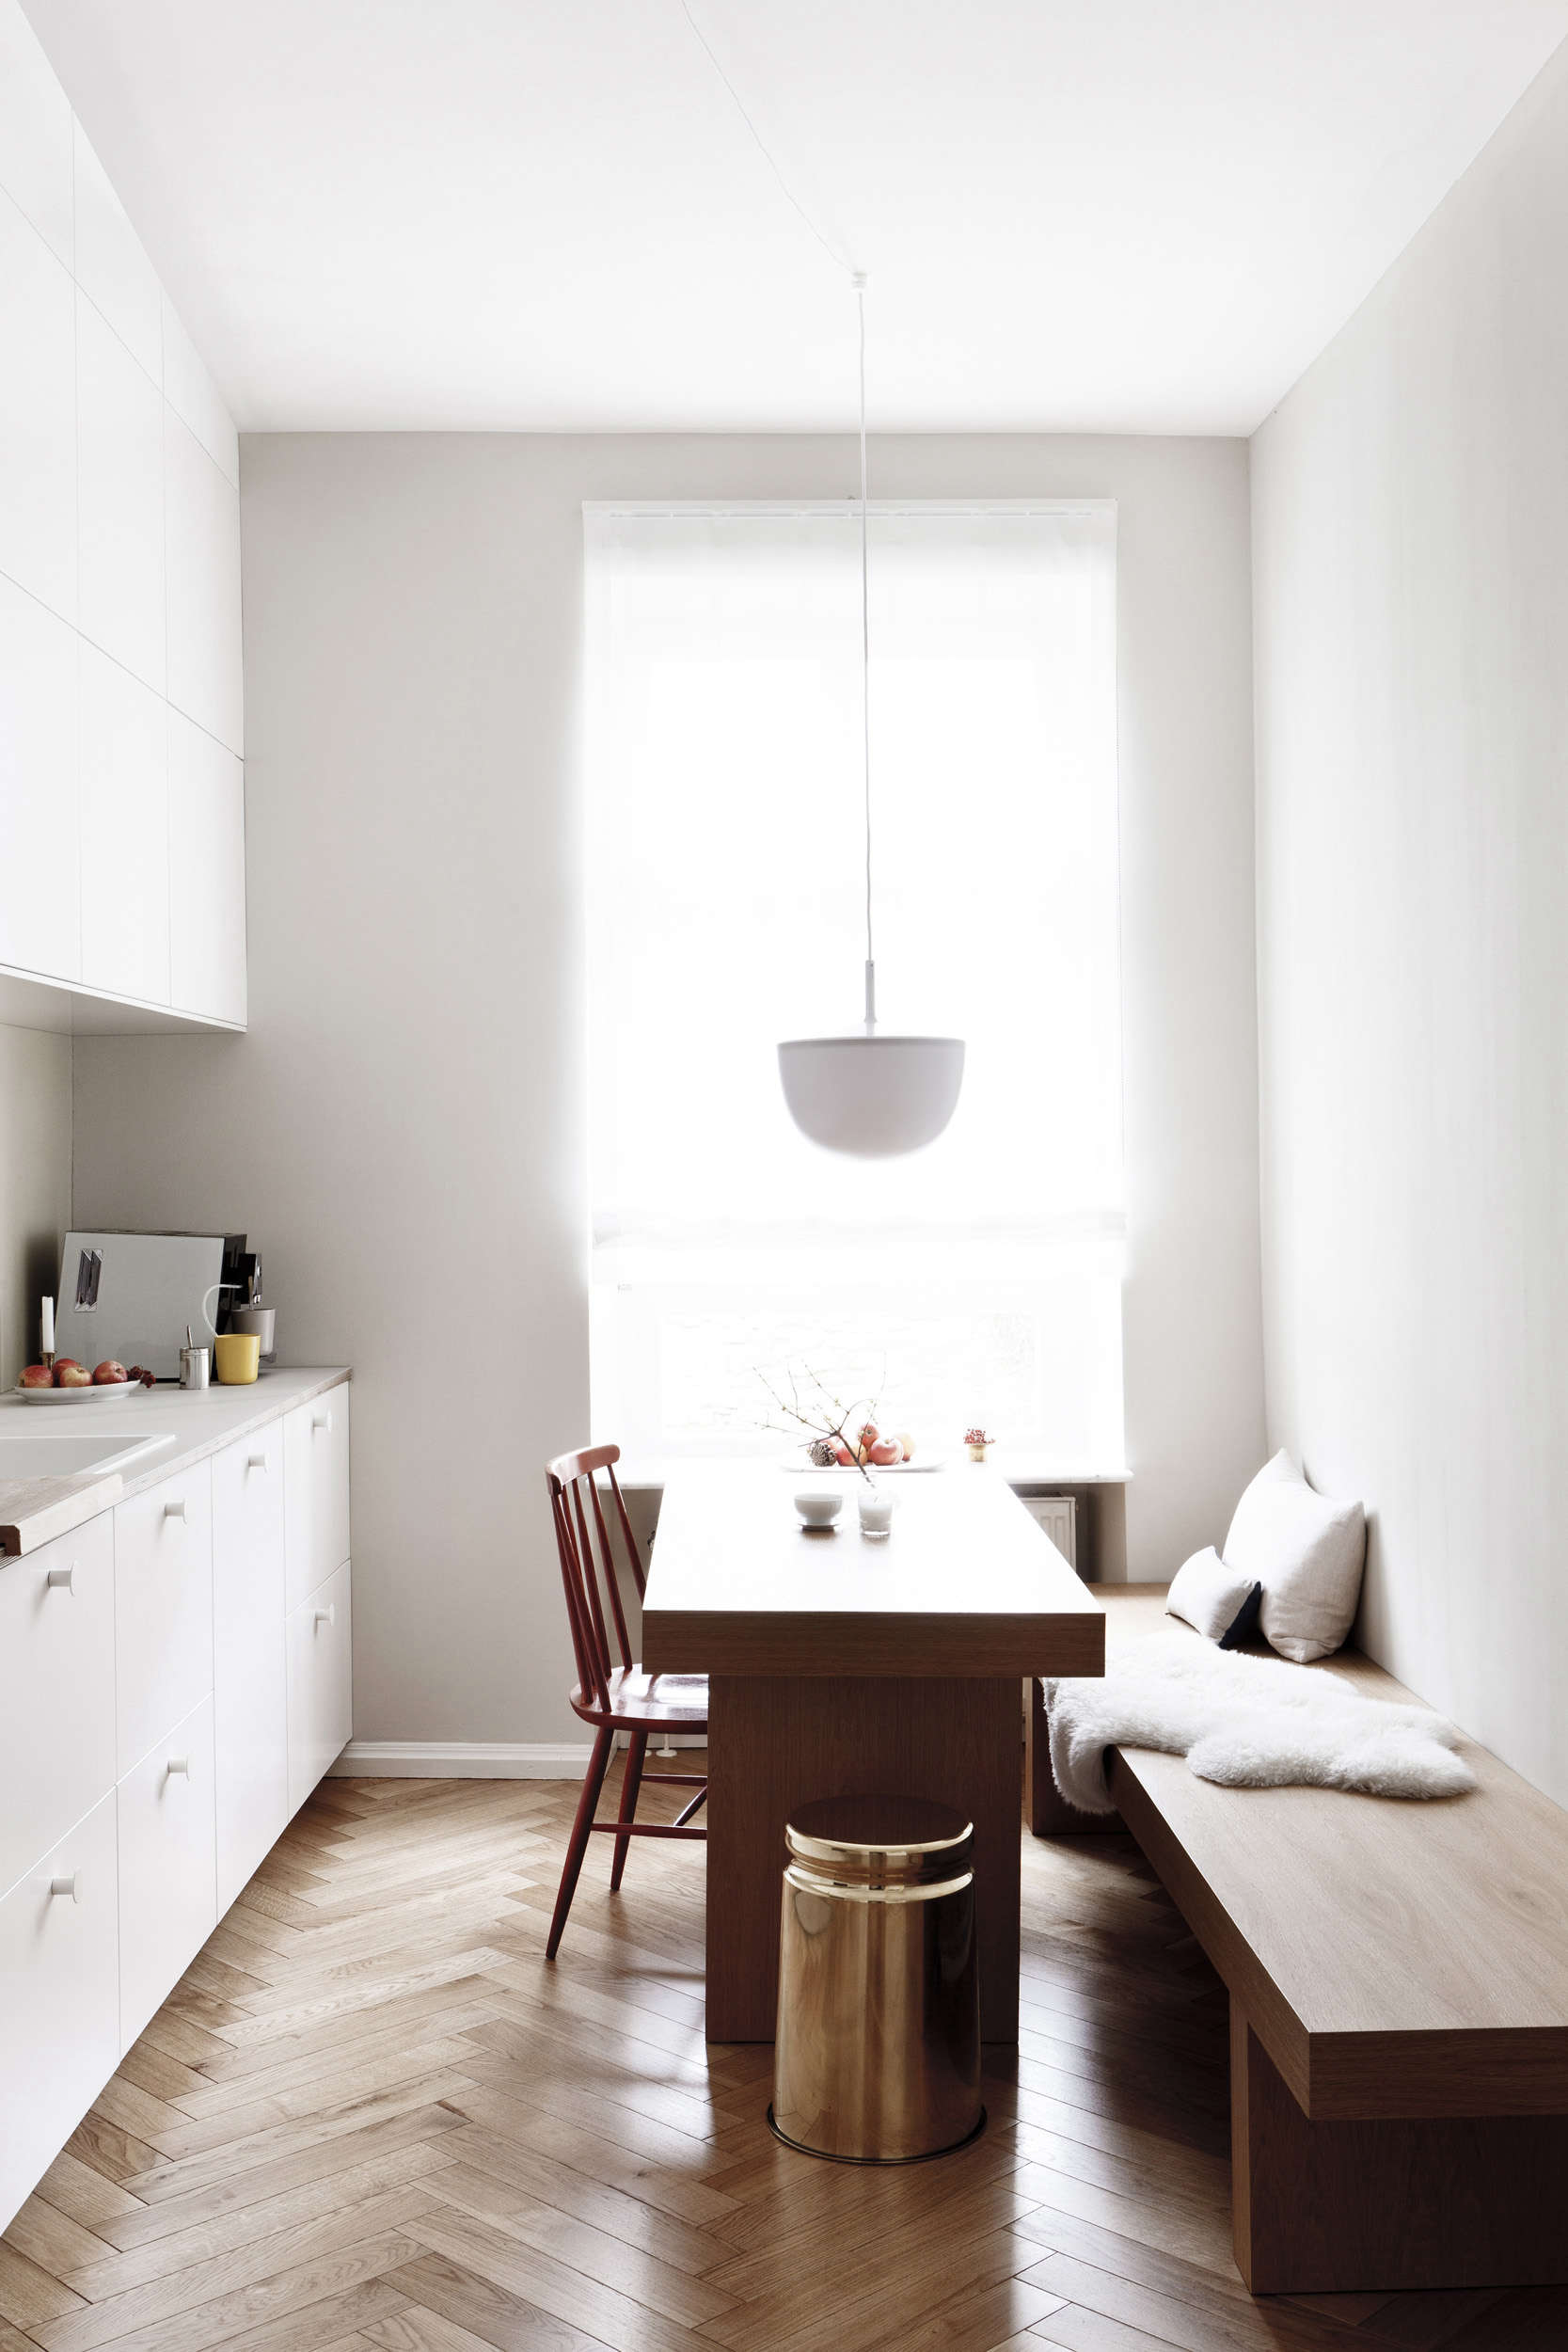 Customized Ikea kitchen in a luxe-minimalist apartment remodel by Studio Oink in Mainz, Germany | Remodelista